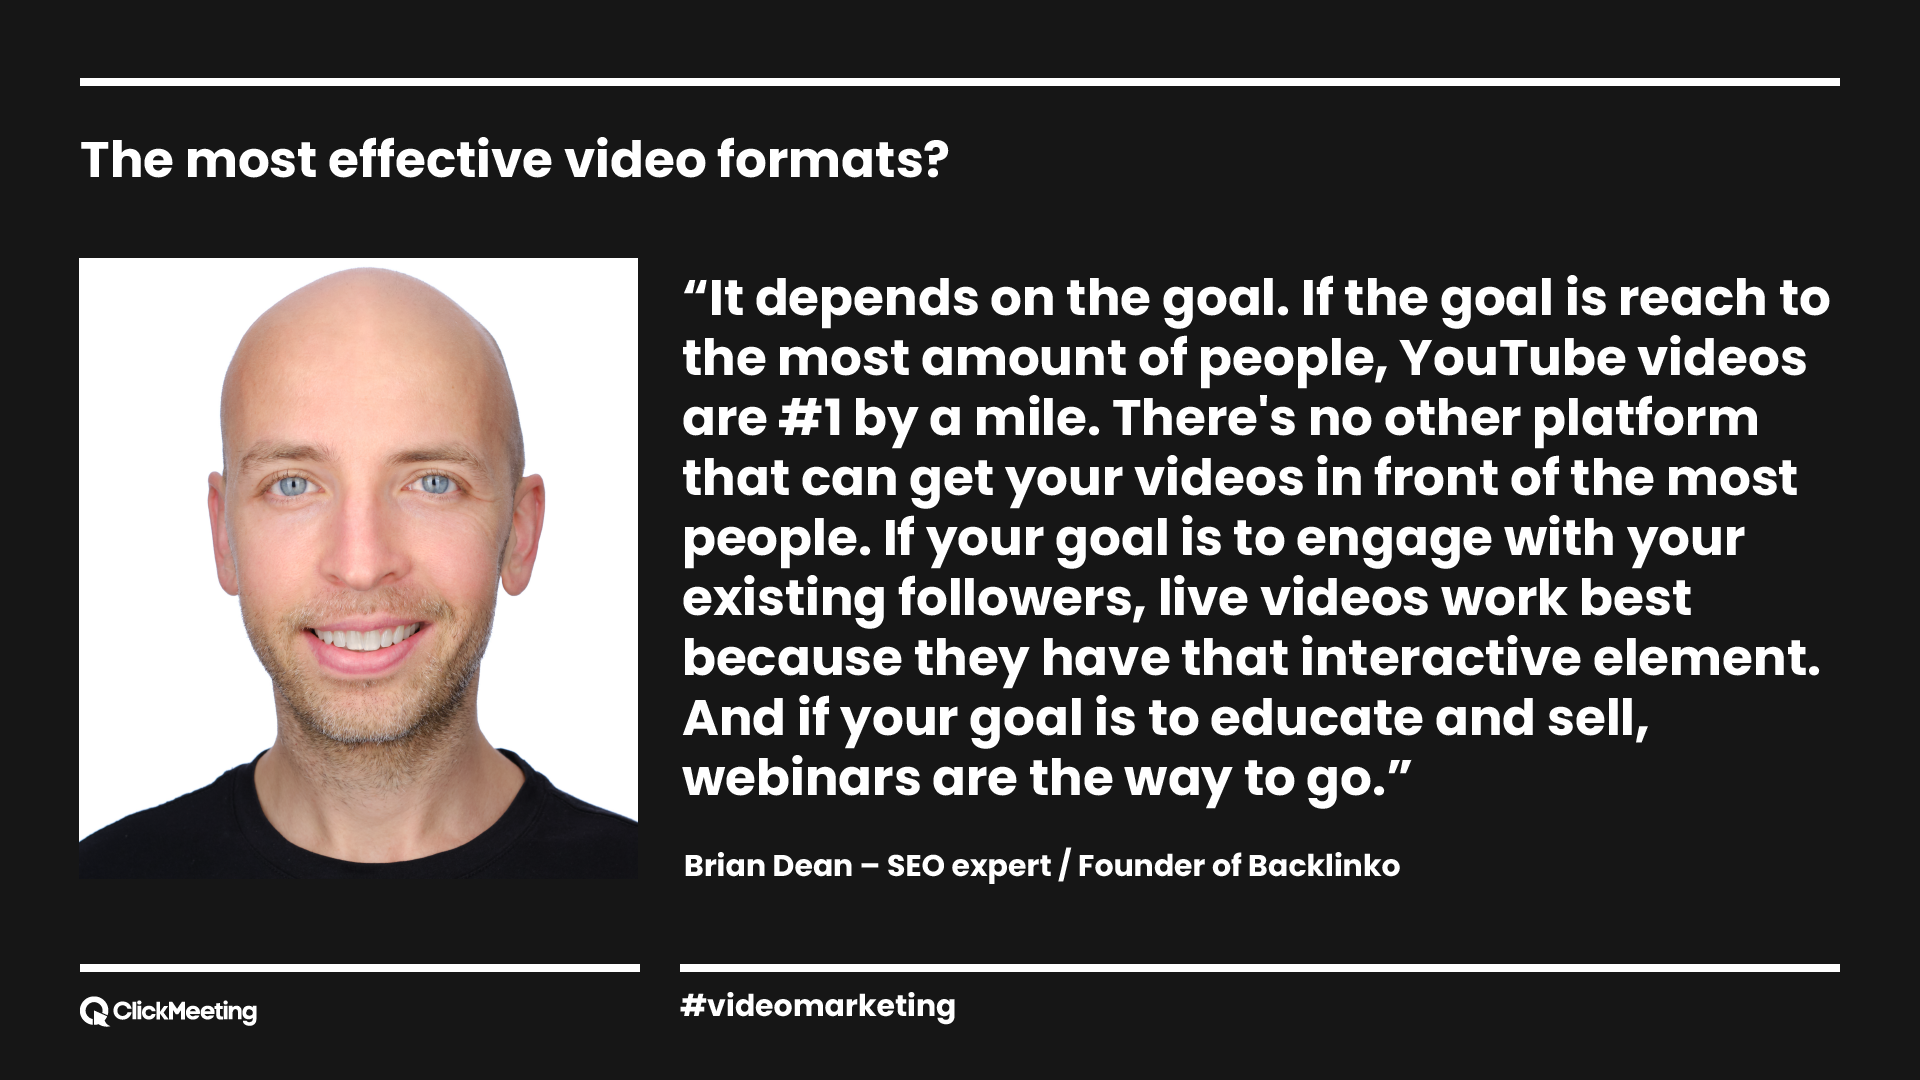 It depends on the goal. If the goal is to reach the most amount of people, YouTube videos are #1 by a mile. There's no other platform that can get your videos in front of most people. If your goal is to engage with your existing followers, live videos work best because they have that interactive element. And if your goal is to educate and sell, webinars are the way to go.